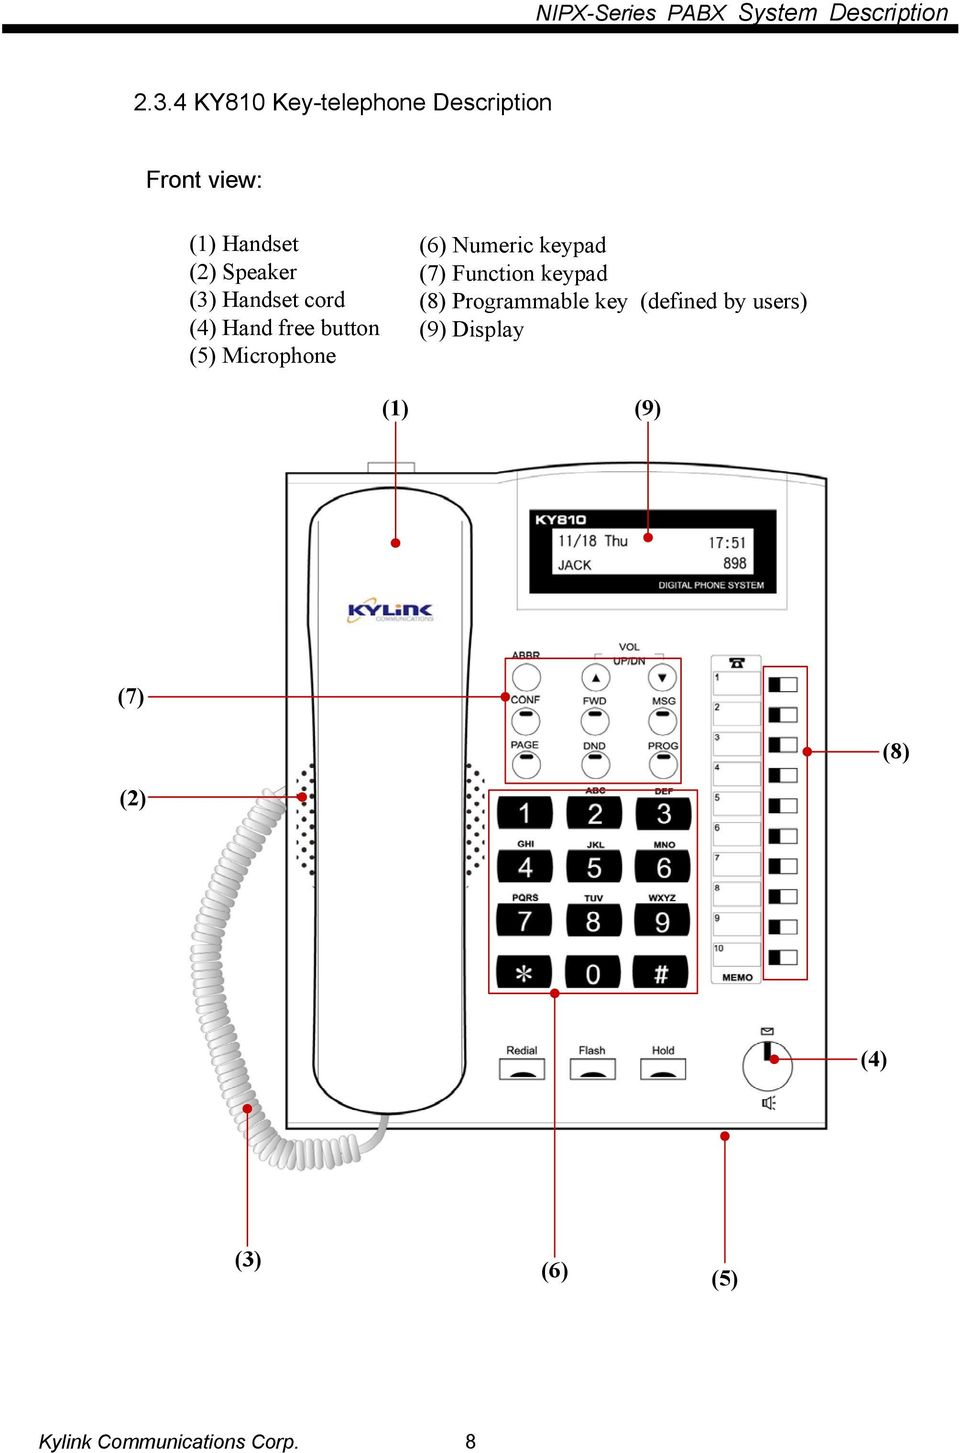 Numeric keypad (7) Function keypad (8) Programmable key (defined by